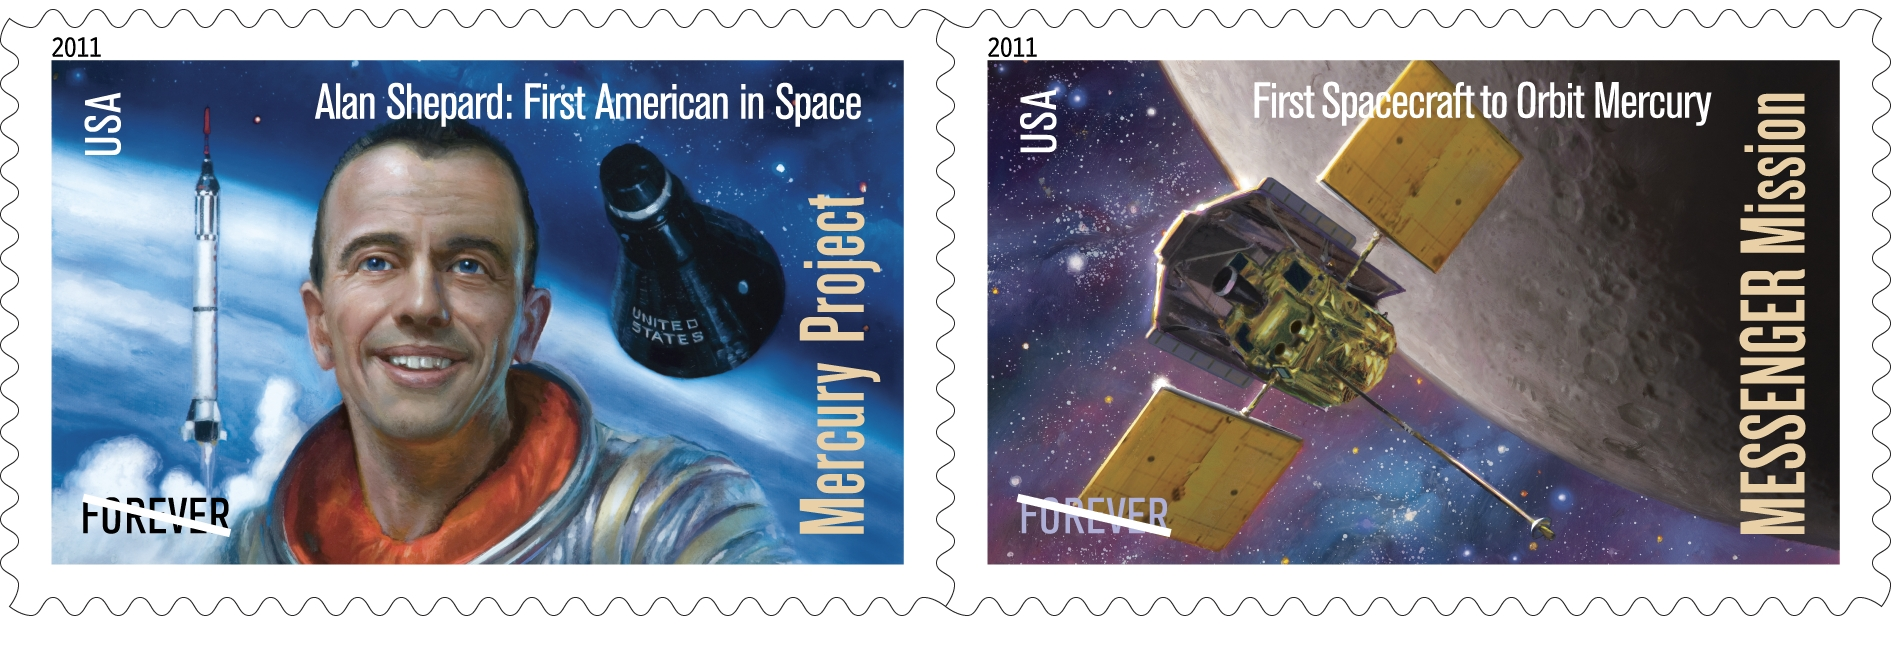 stamps from space nasa - photo #15